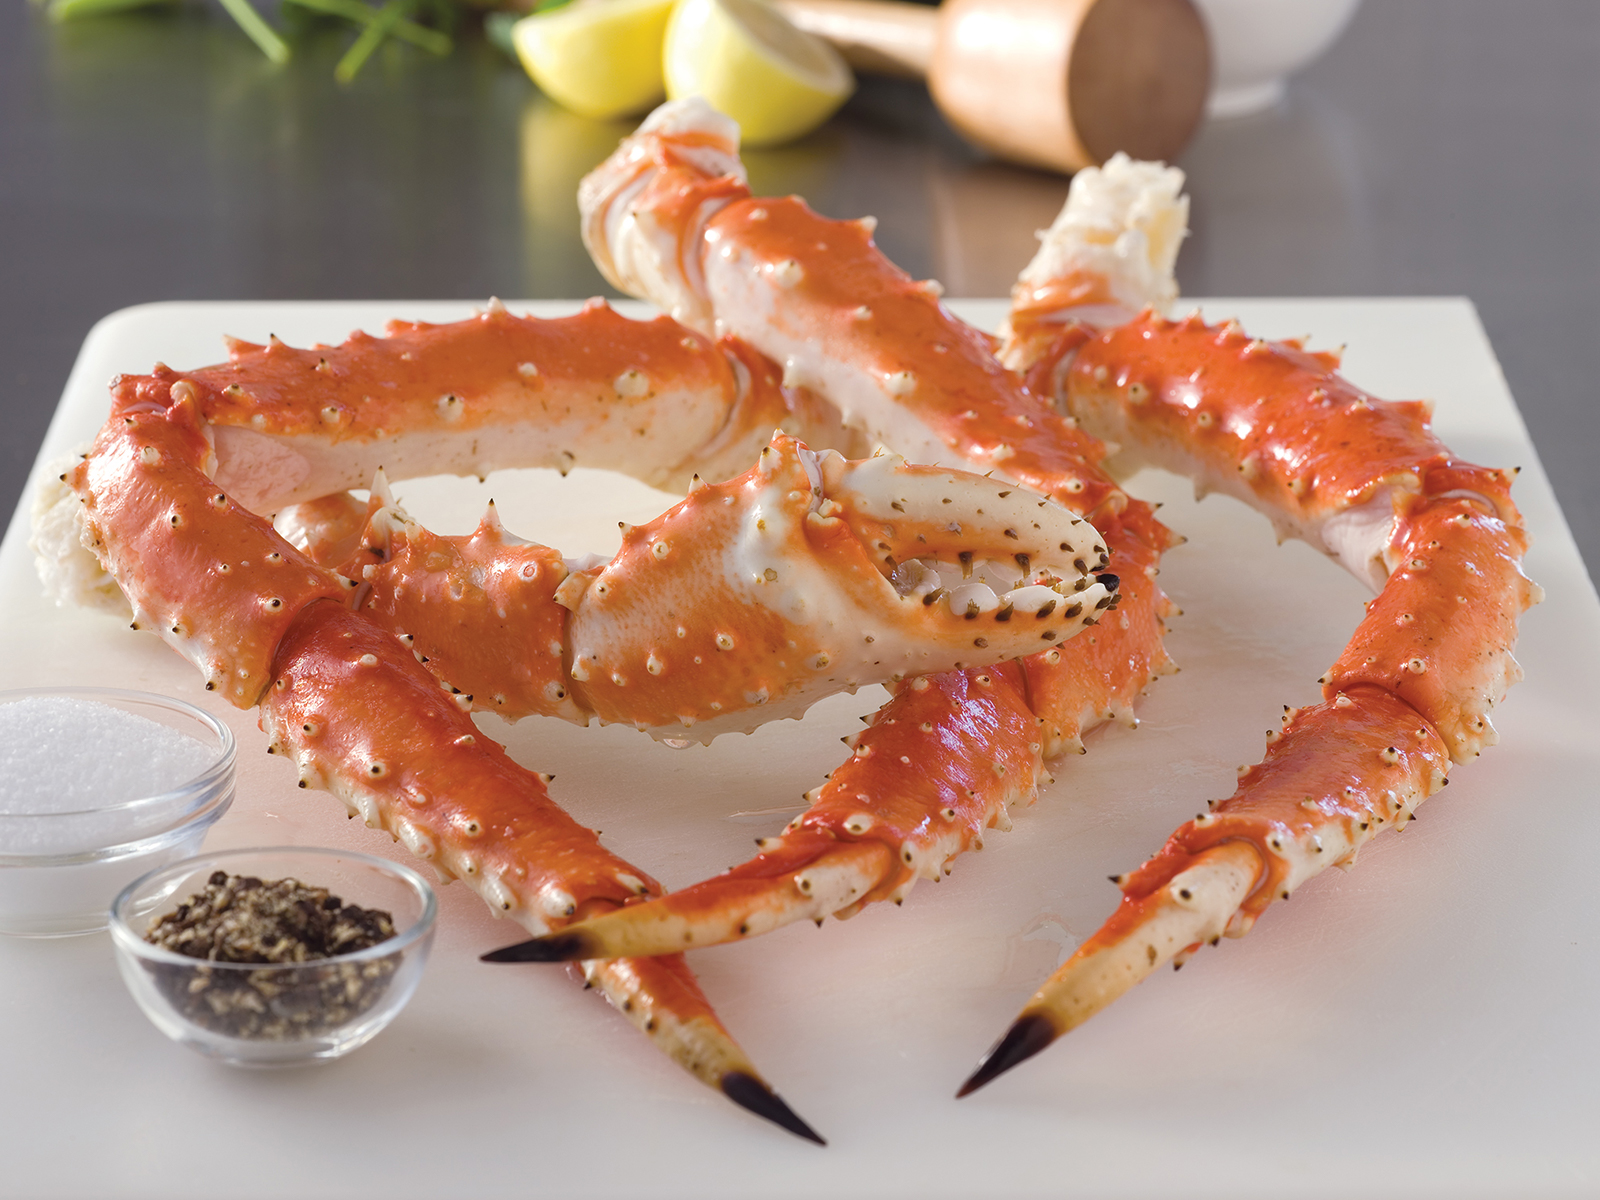 Red King Crab Legs & Claws 20-25 Count (1/20 lb) 432458